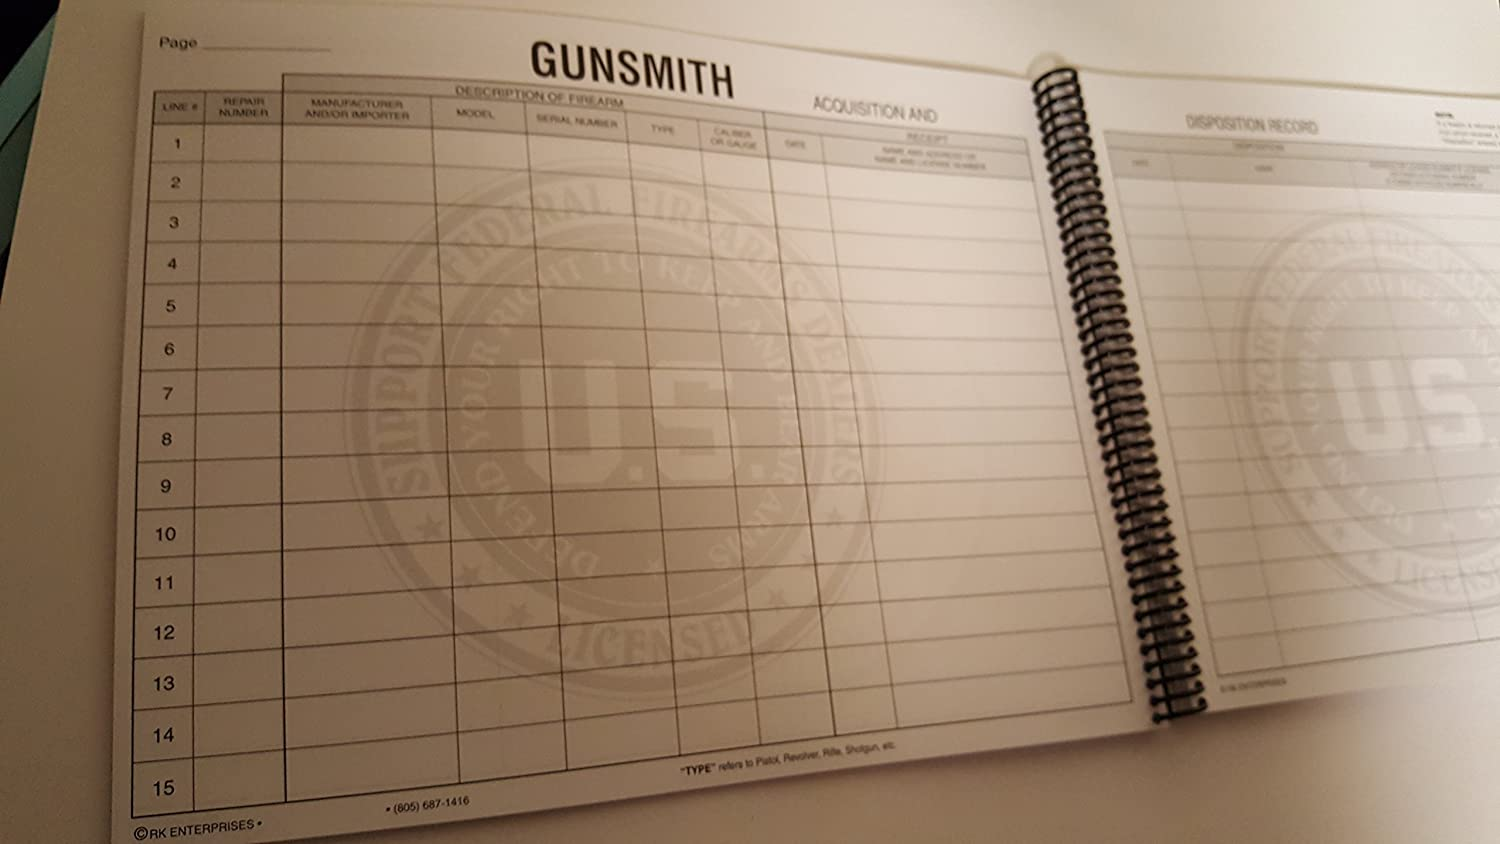 Amazon.com : Gunsmith Record Book (1000 Entry) : Office Products